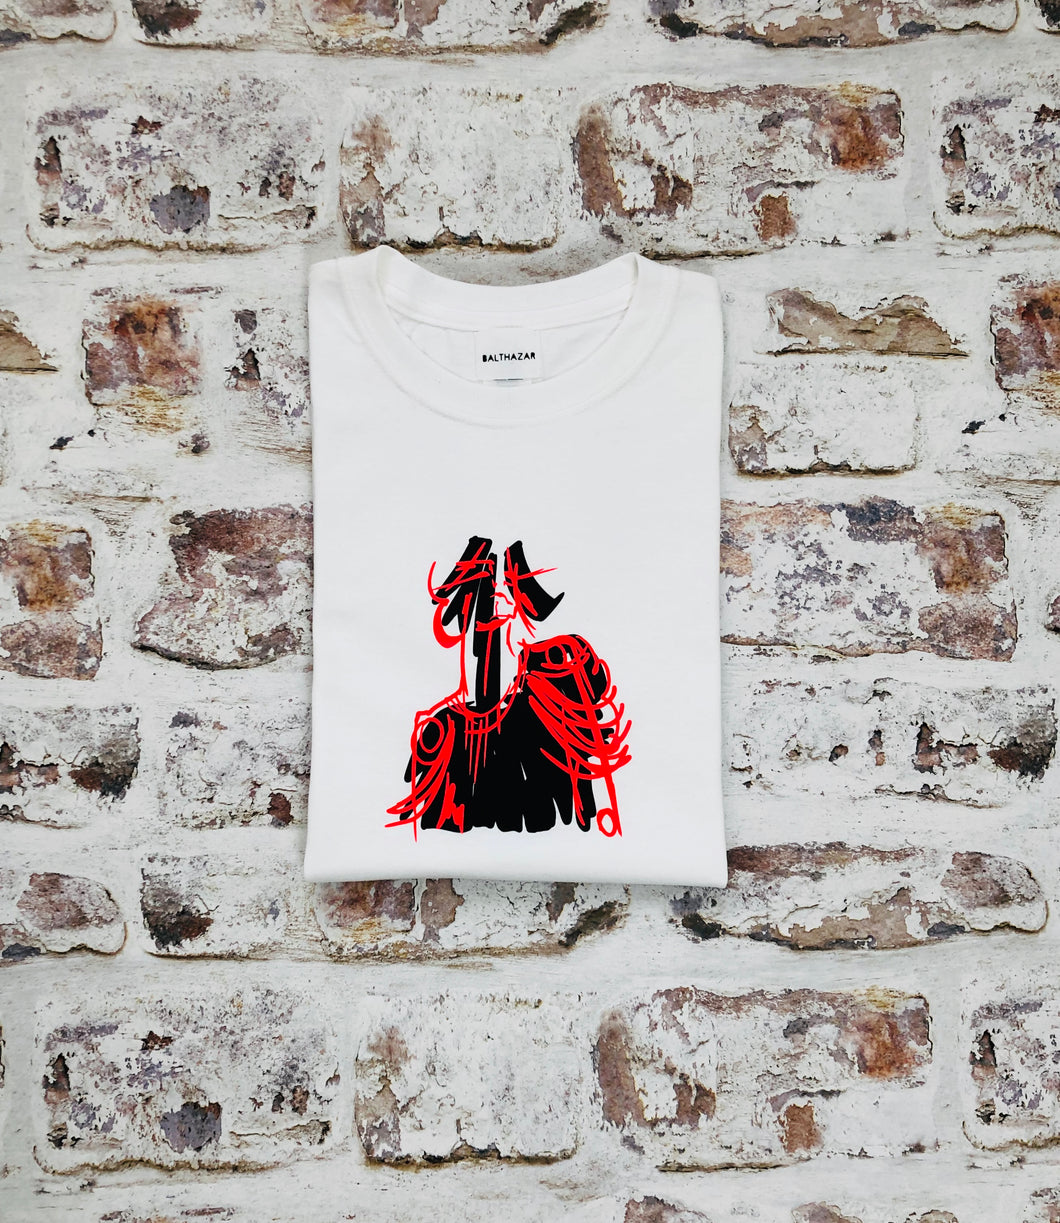 Red Neon Commander doll head t-shirt